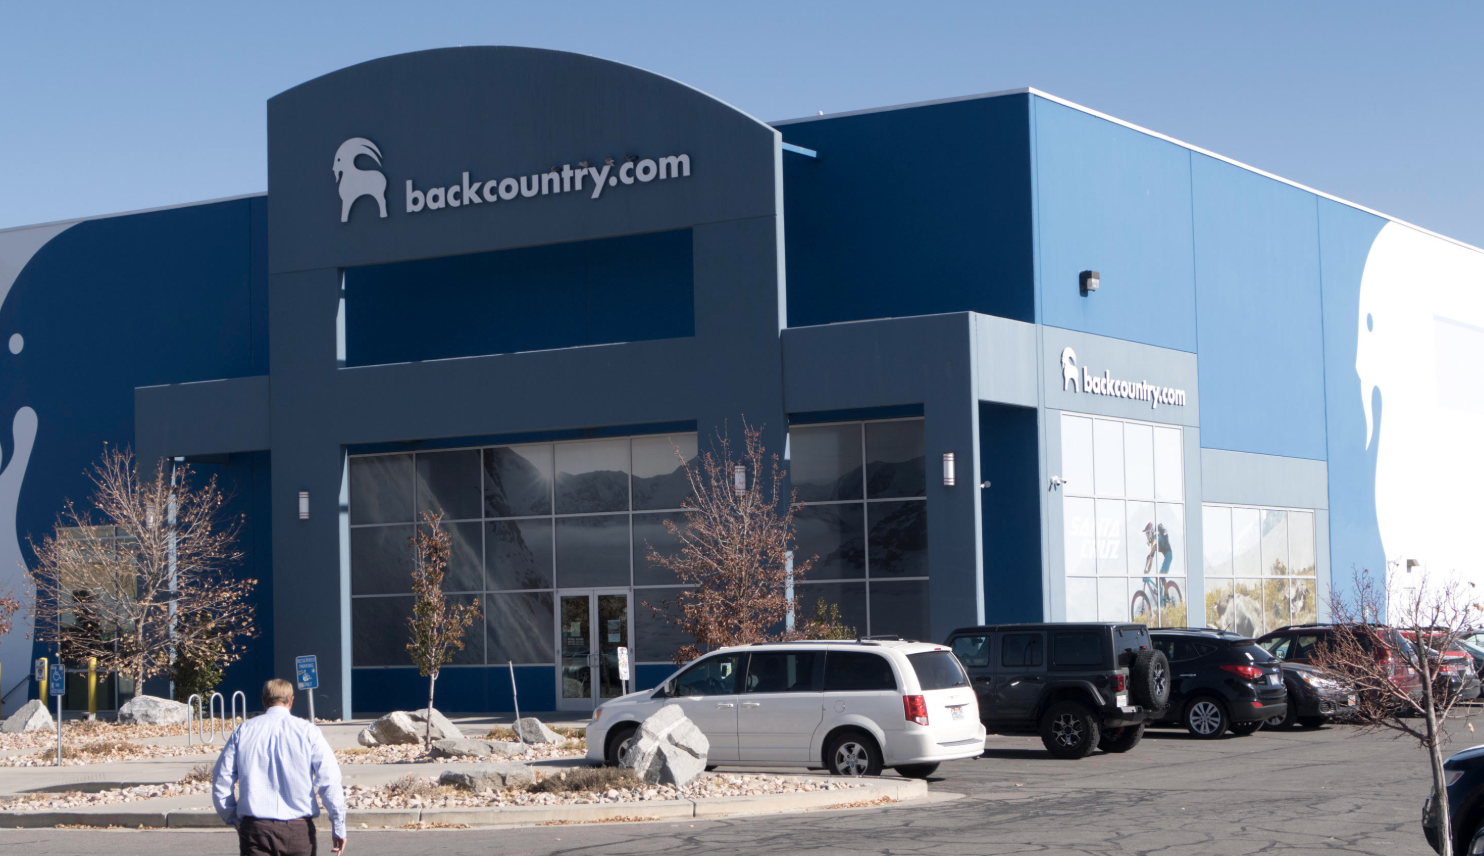 Backcountry.com fires its attorneys, partners with company it targeted in trademark lawsuit as CEO vows to make amends